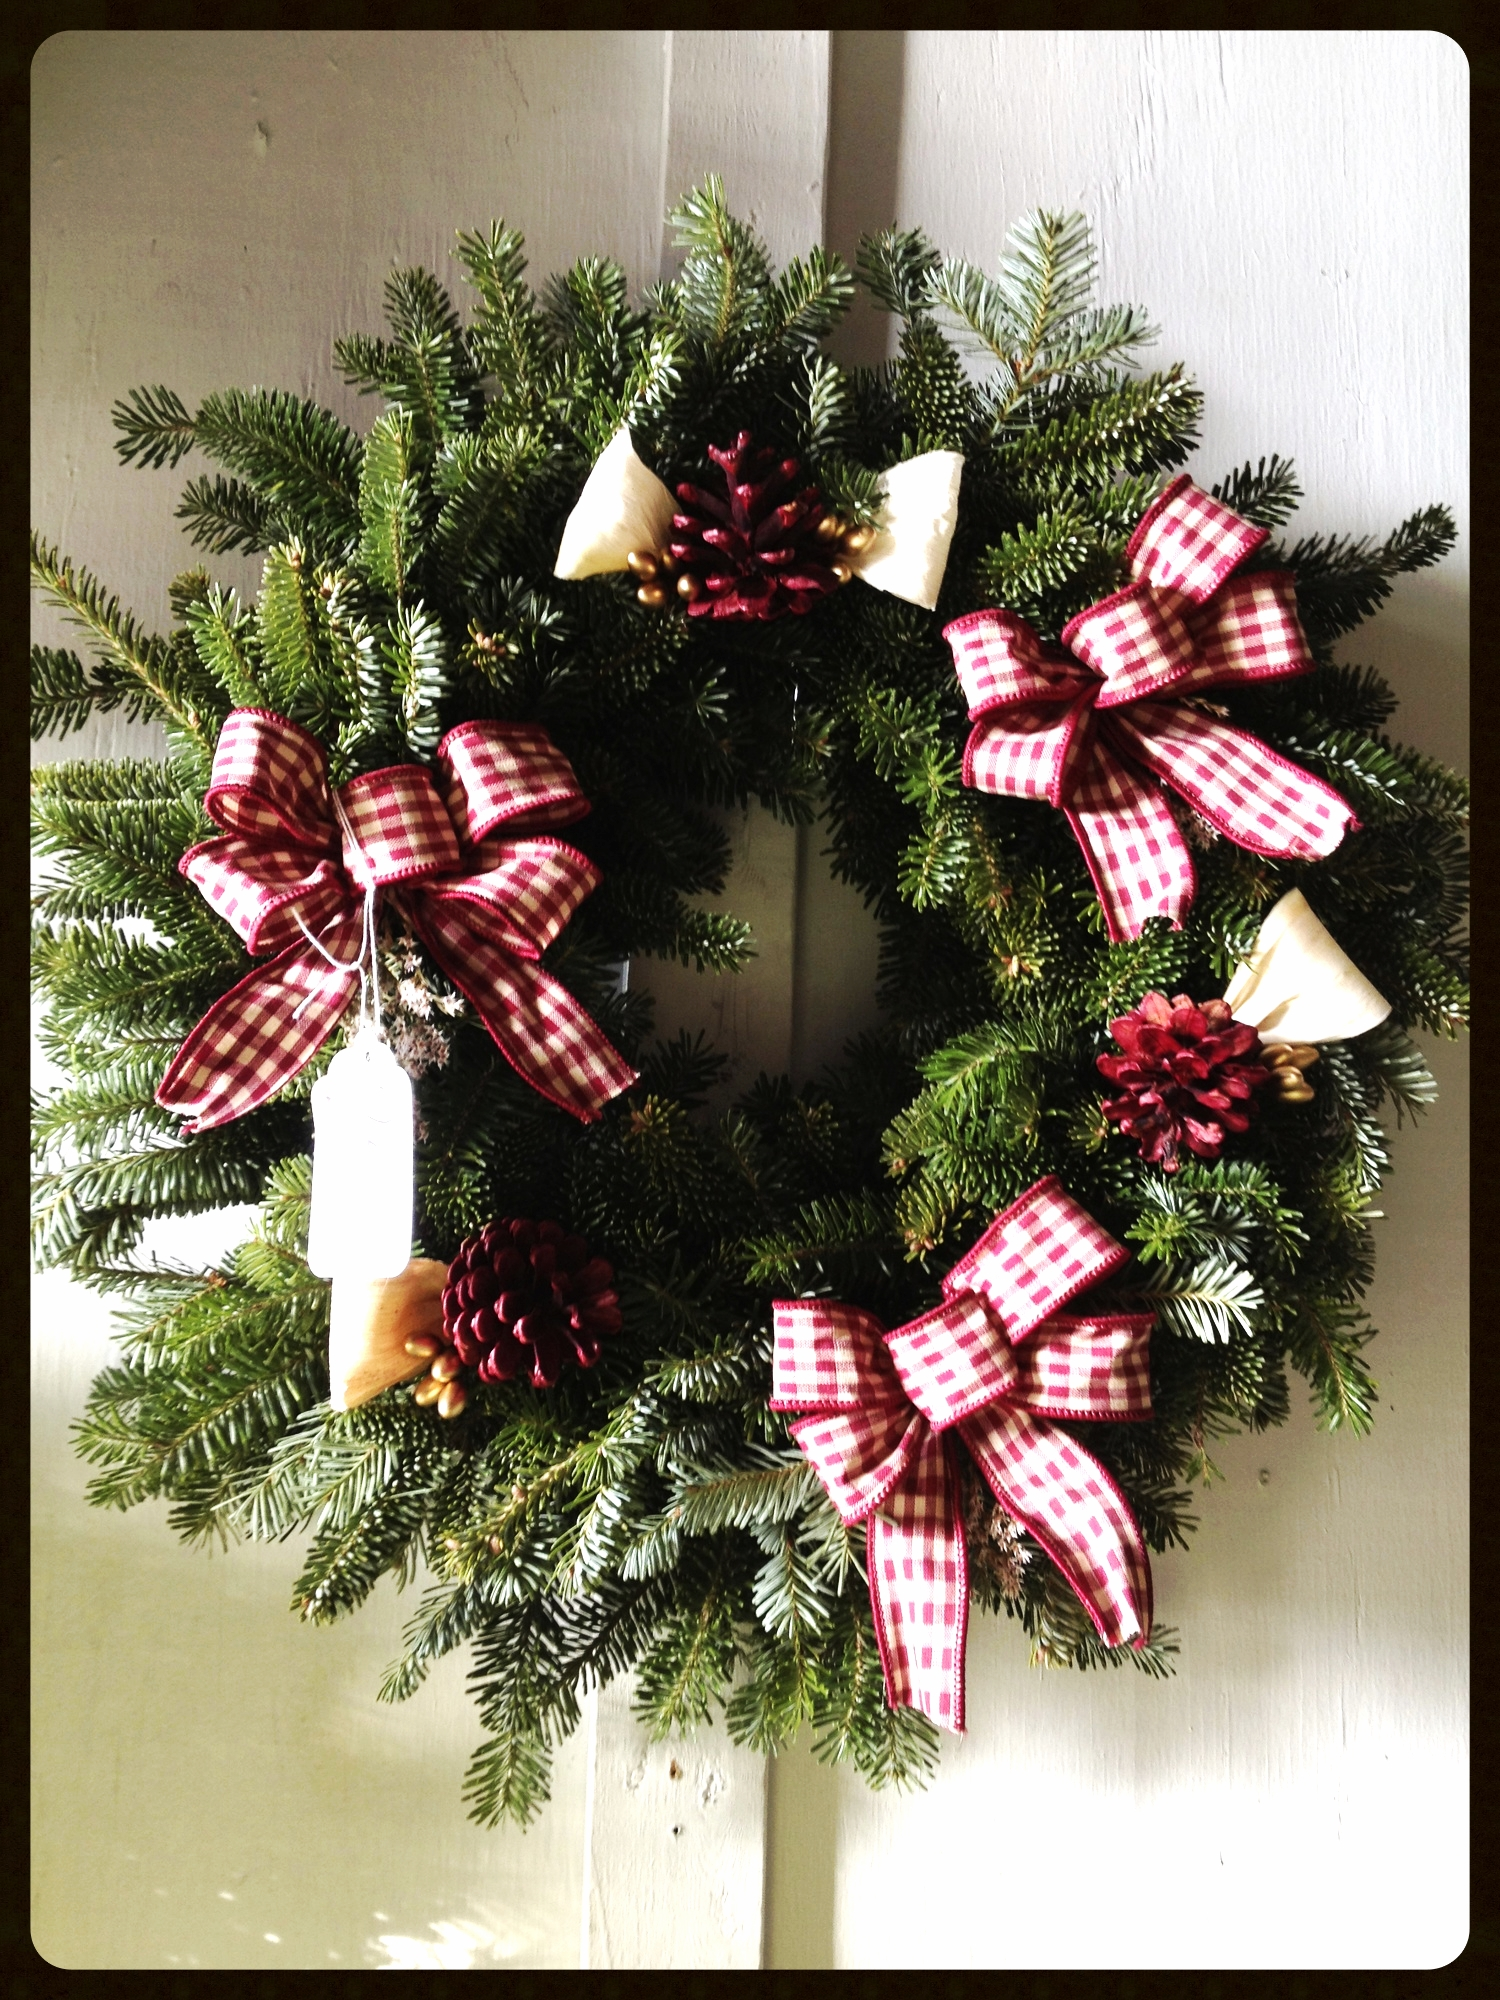 - We have a large variety of wreaths and swags.